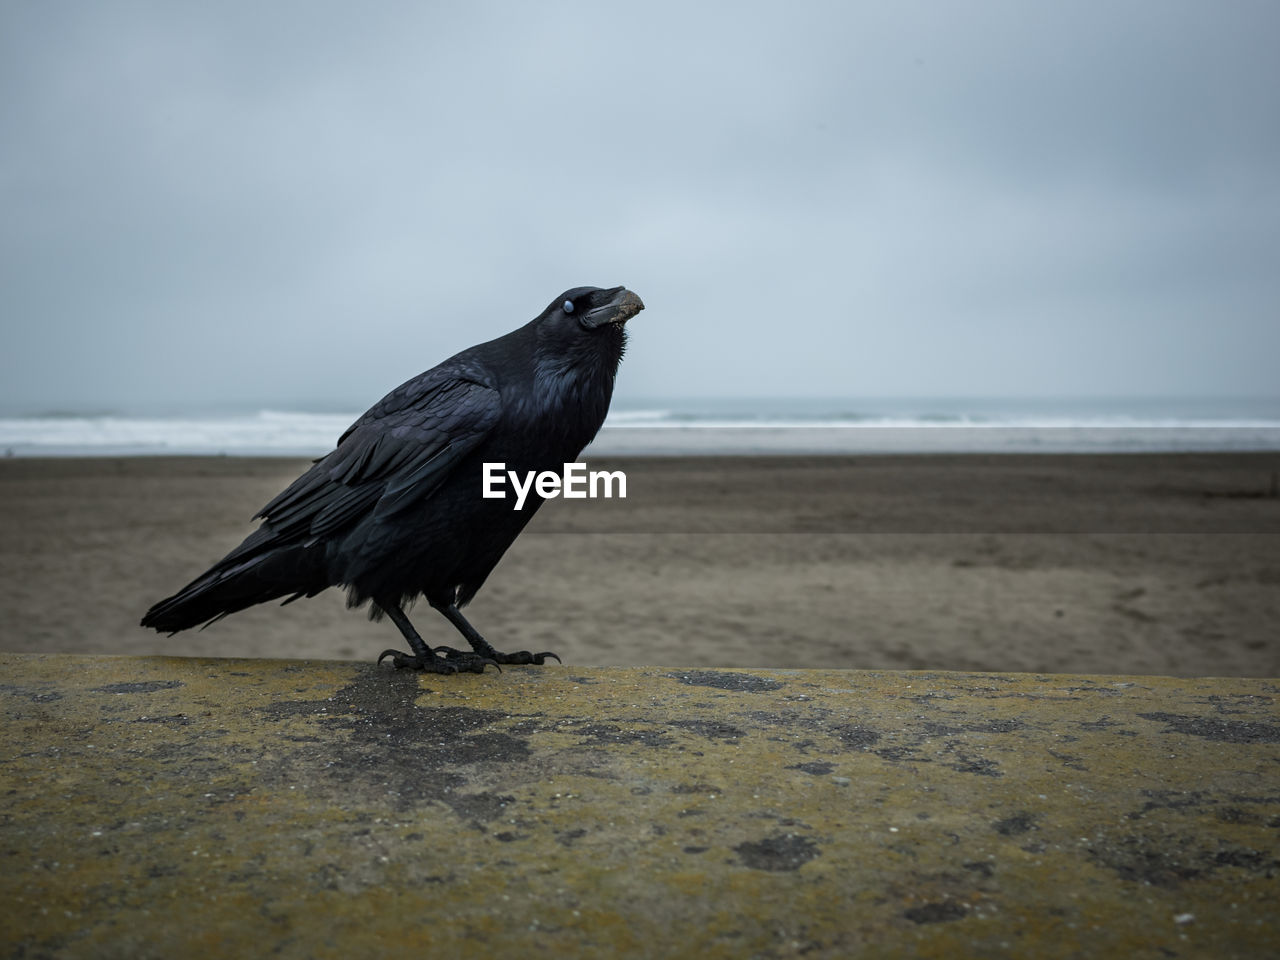 A large raven standing on a concrete ledge near beach on an overcast day.